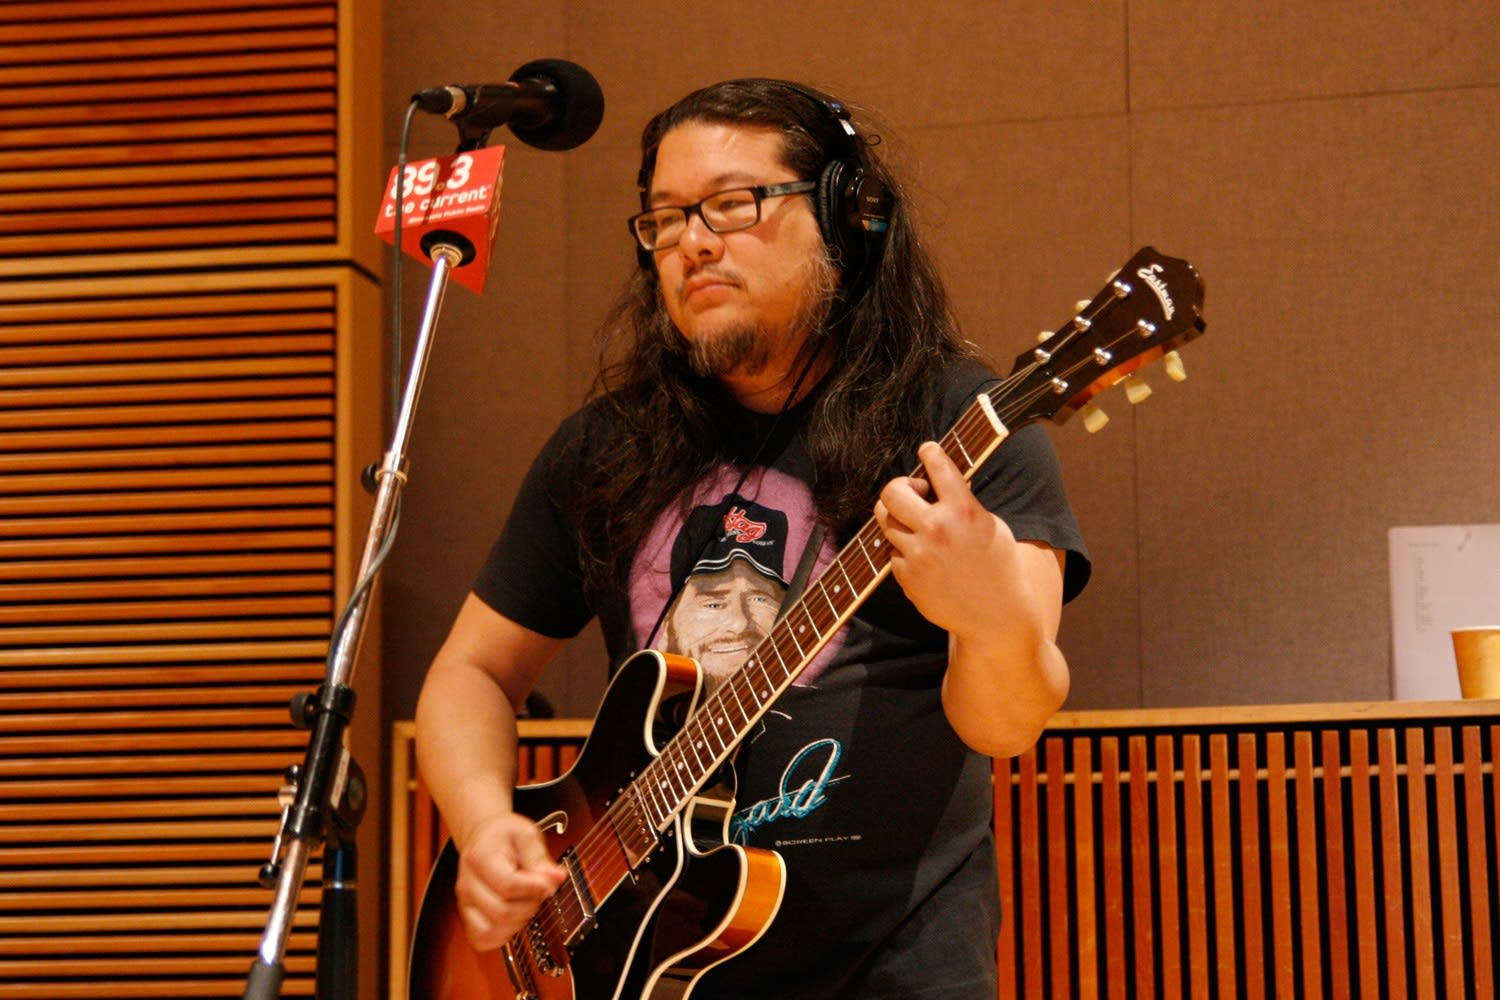 Bobb Bruno of Best Coast